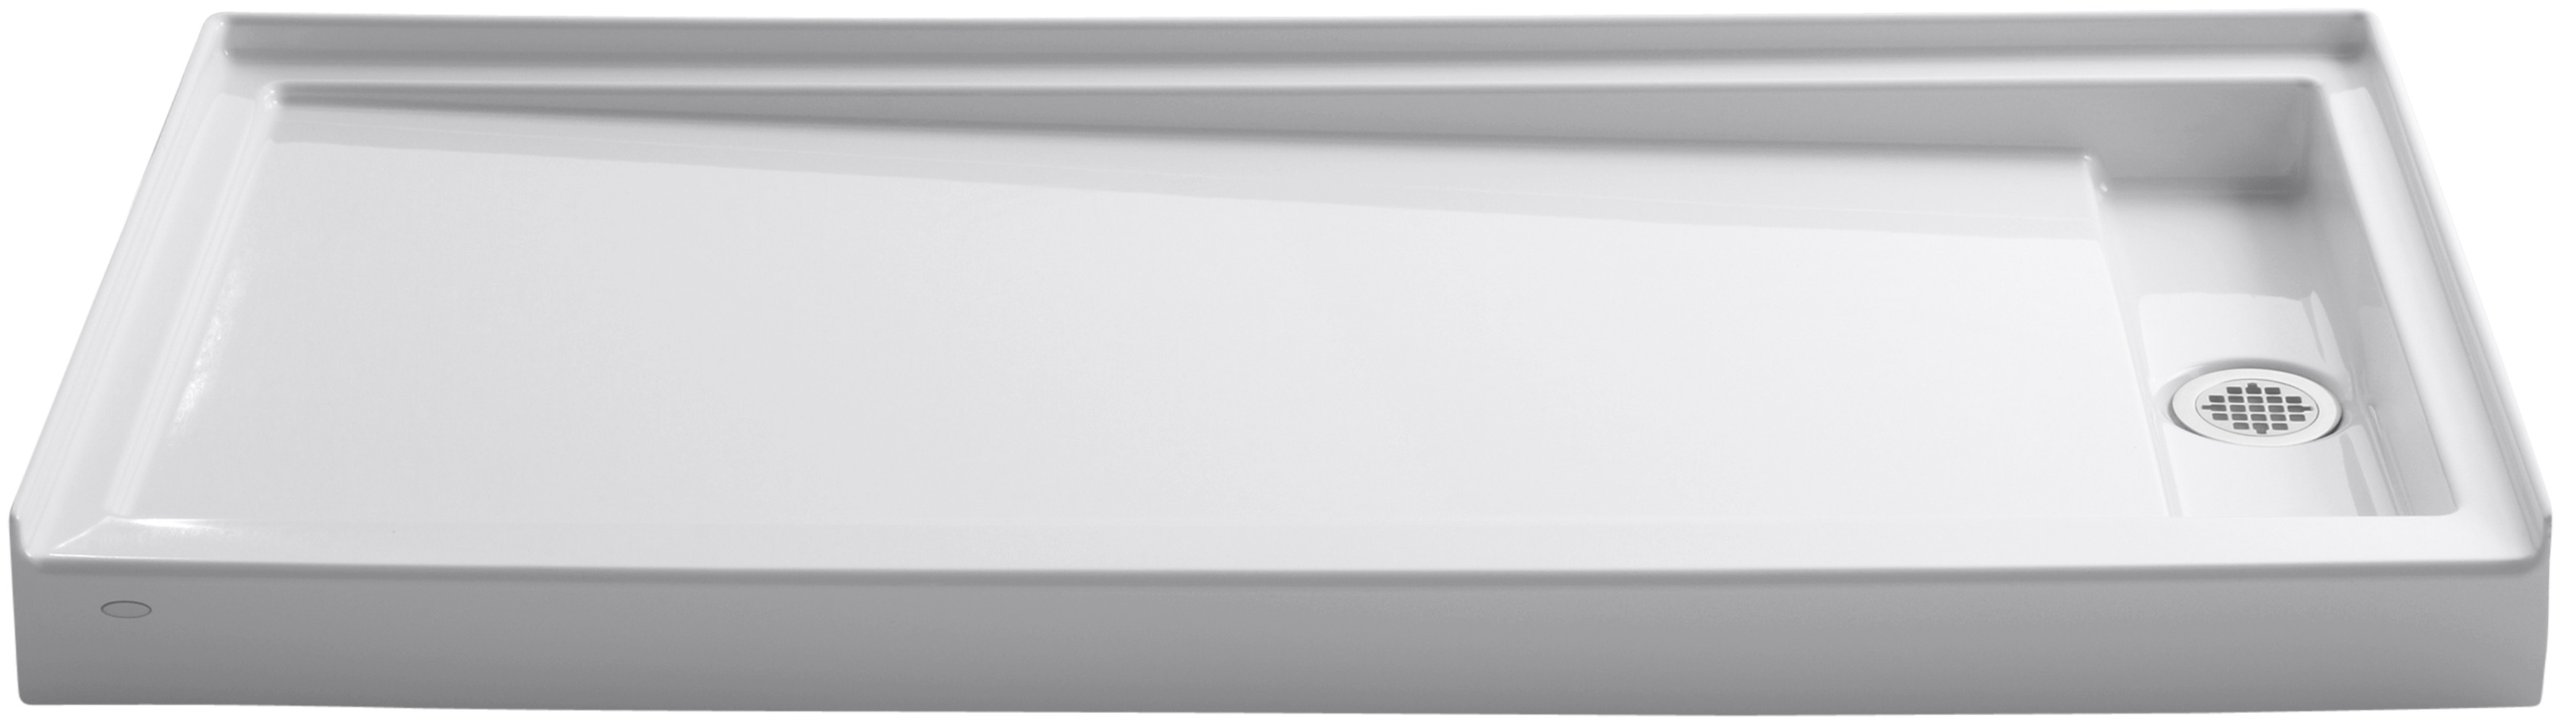 KOHLER K-9948-0 Groove Acrylic Receptor 60-Inch by 32-Inch Right-Hand Drain, White by Kohler